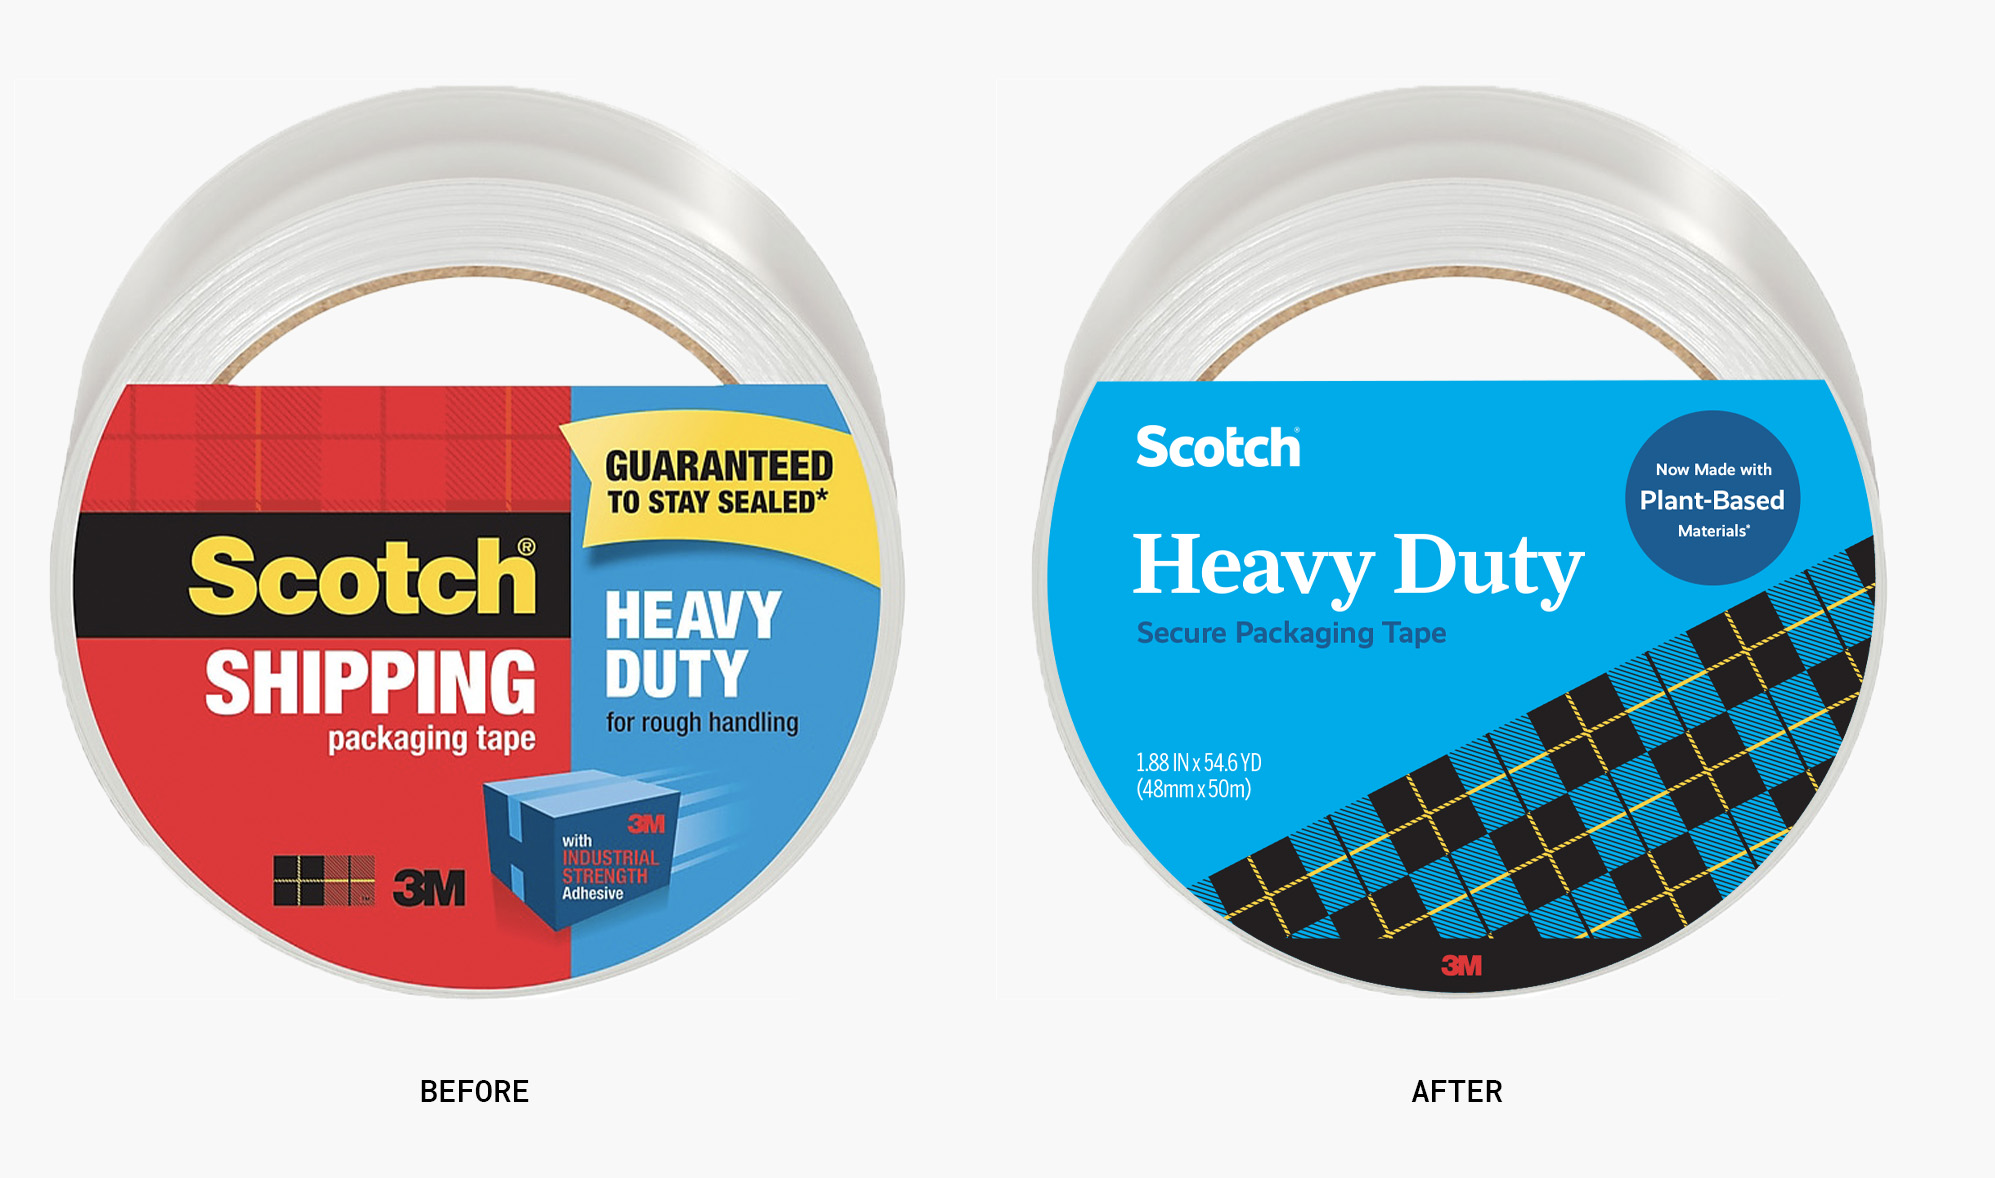 Before and after of Scotch's packing tape